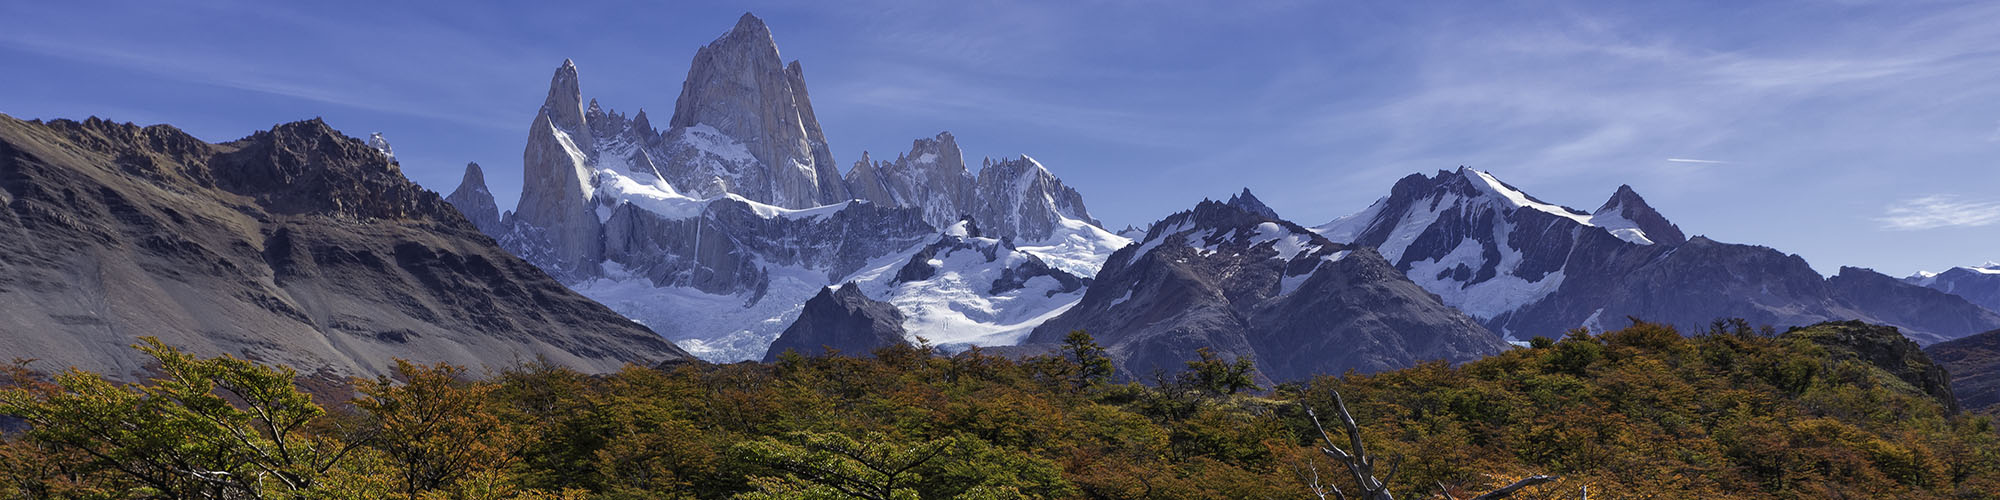 Patagonia - A Visual Expedition